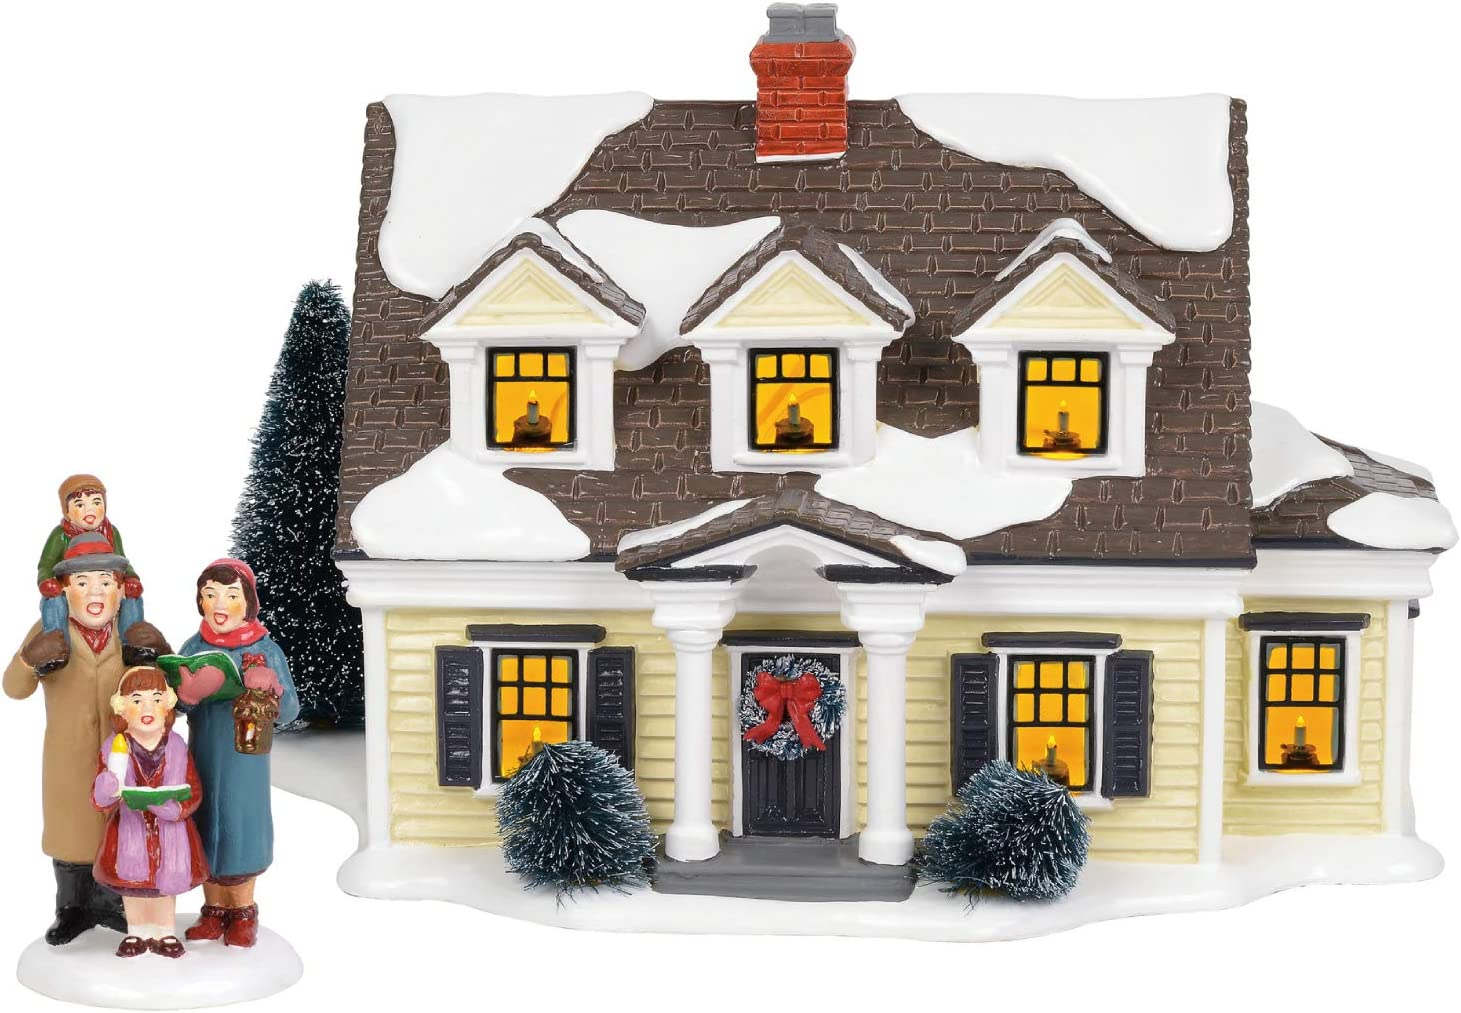 Department56 New life Original Snow New Shipping Free Shipping Village Christmas Build Lit Welcoming